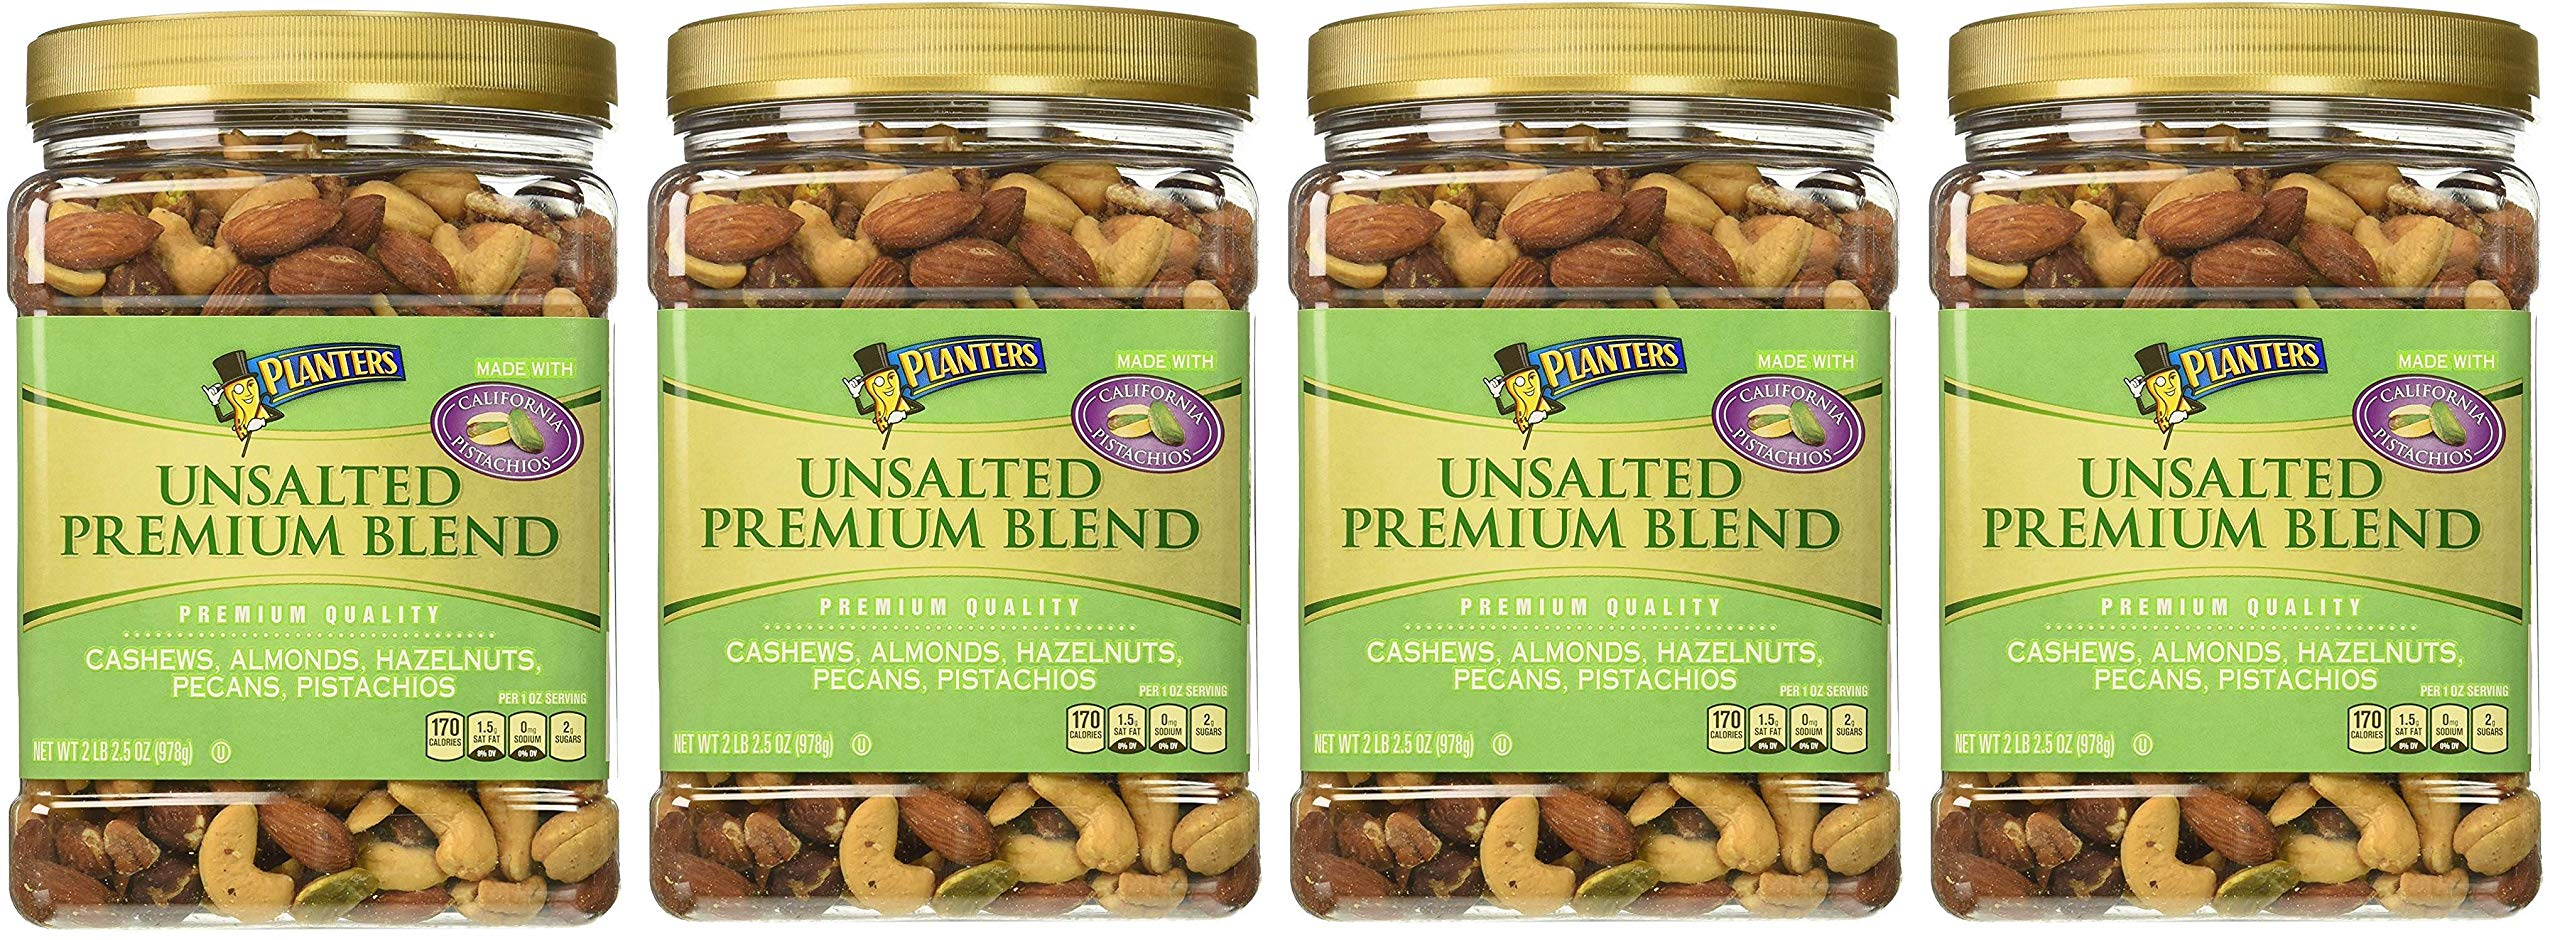 Planters Premium Blend Mixed Nuts, Unsalted, 34.5 Ounce, 4 Tubs